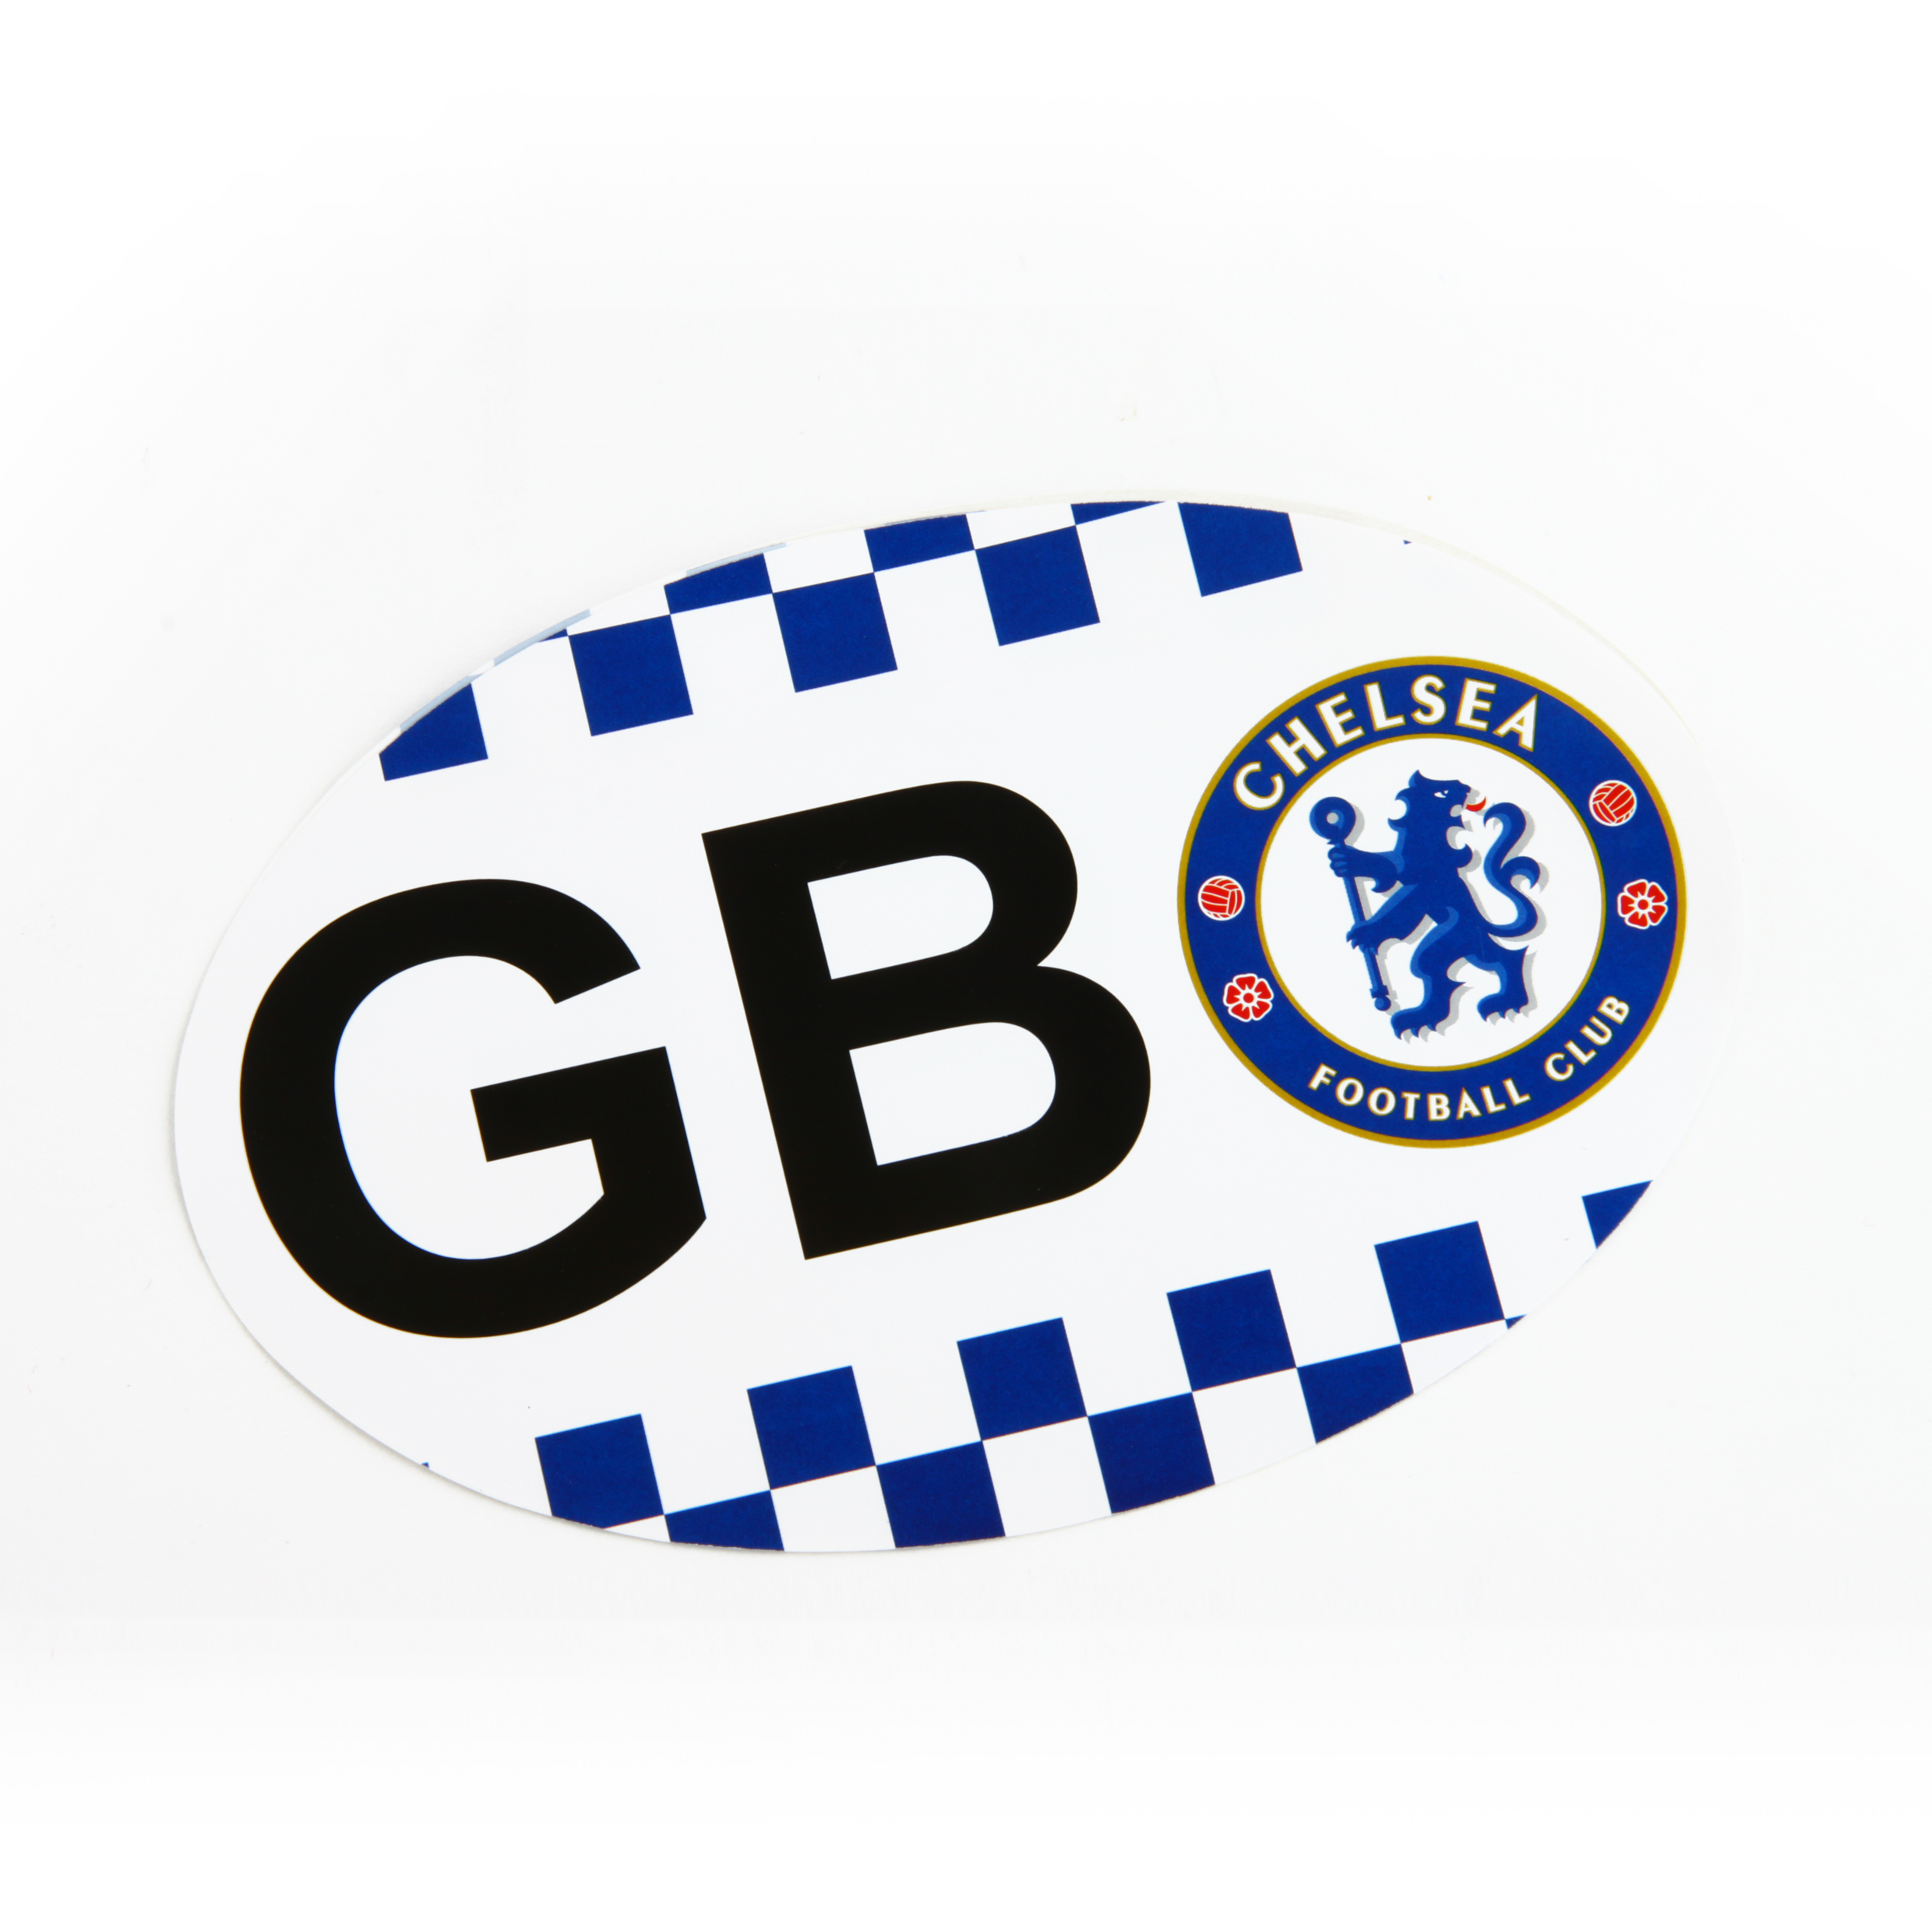 Chelsea GB Car Sticker